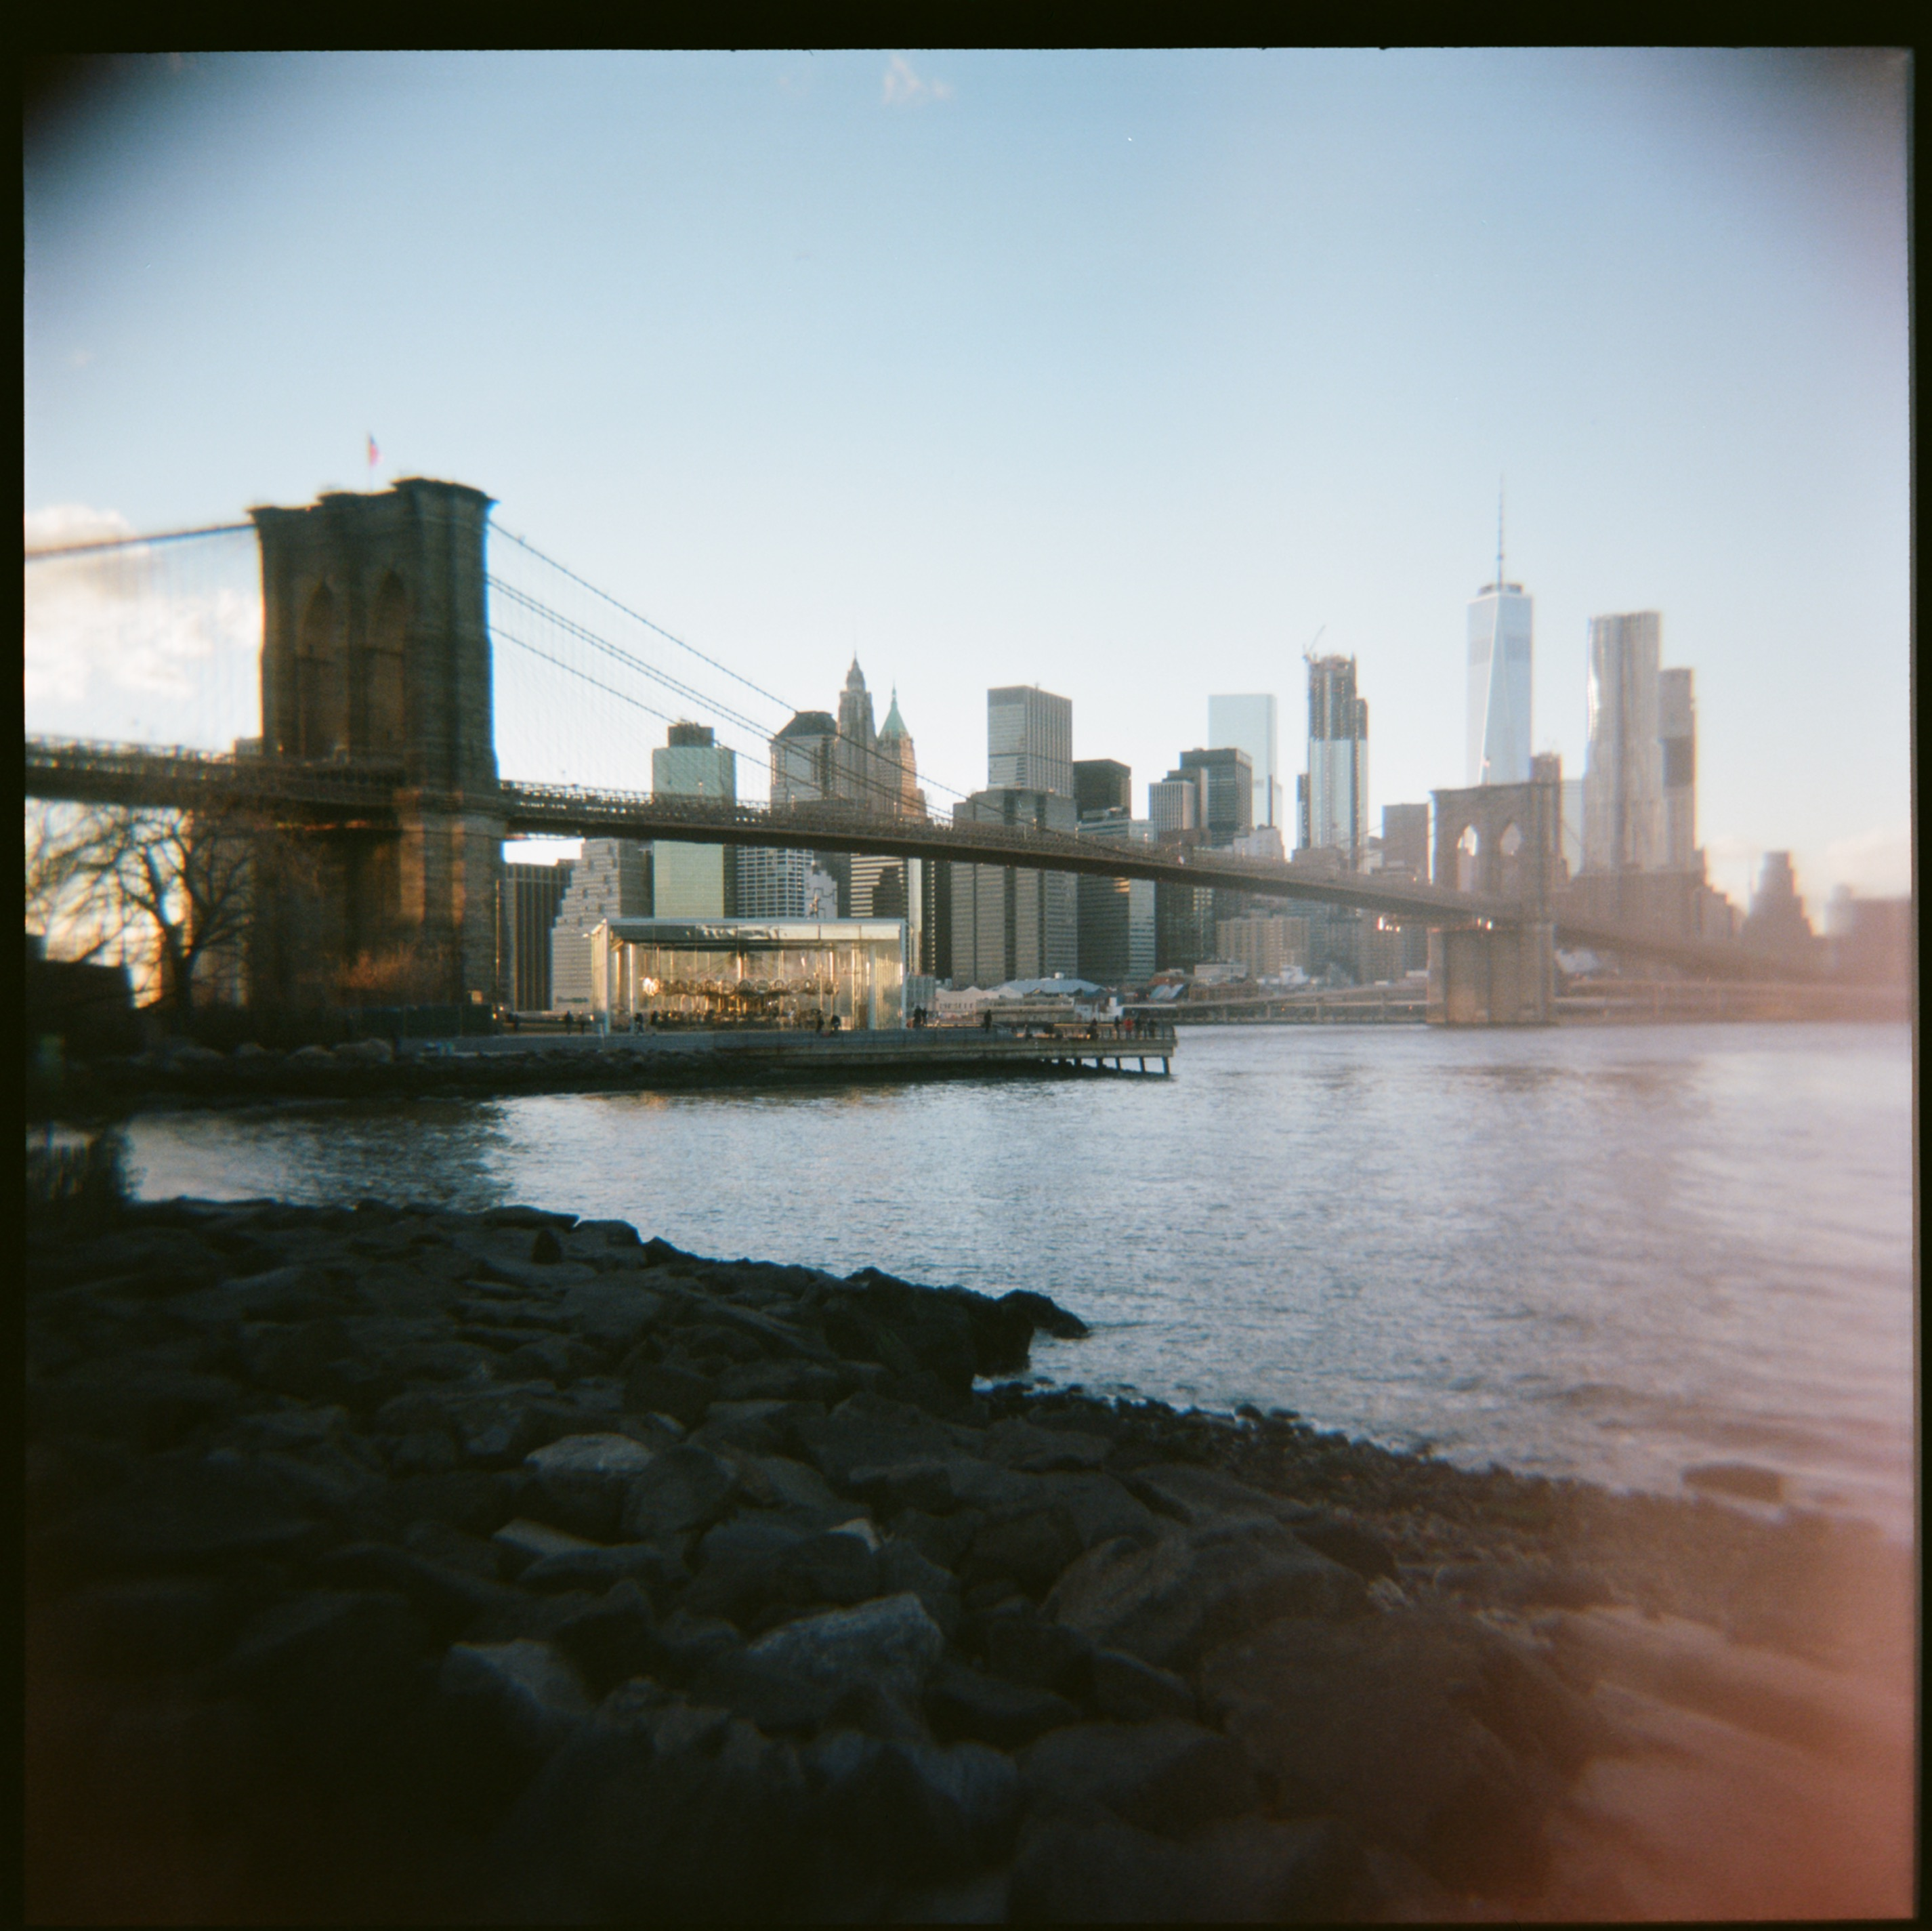 Holga: the cheap plastic camera from Hong Kong that gained a world-wide cult following?